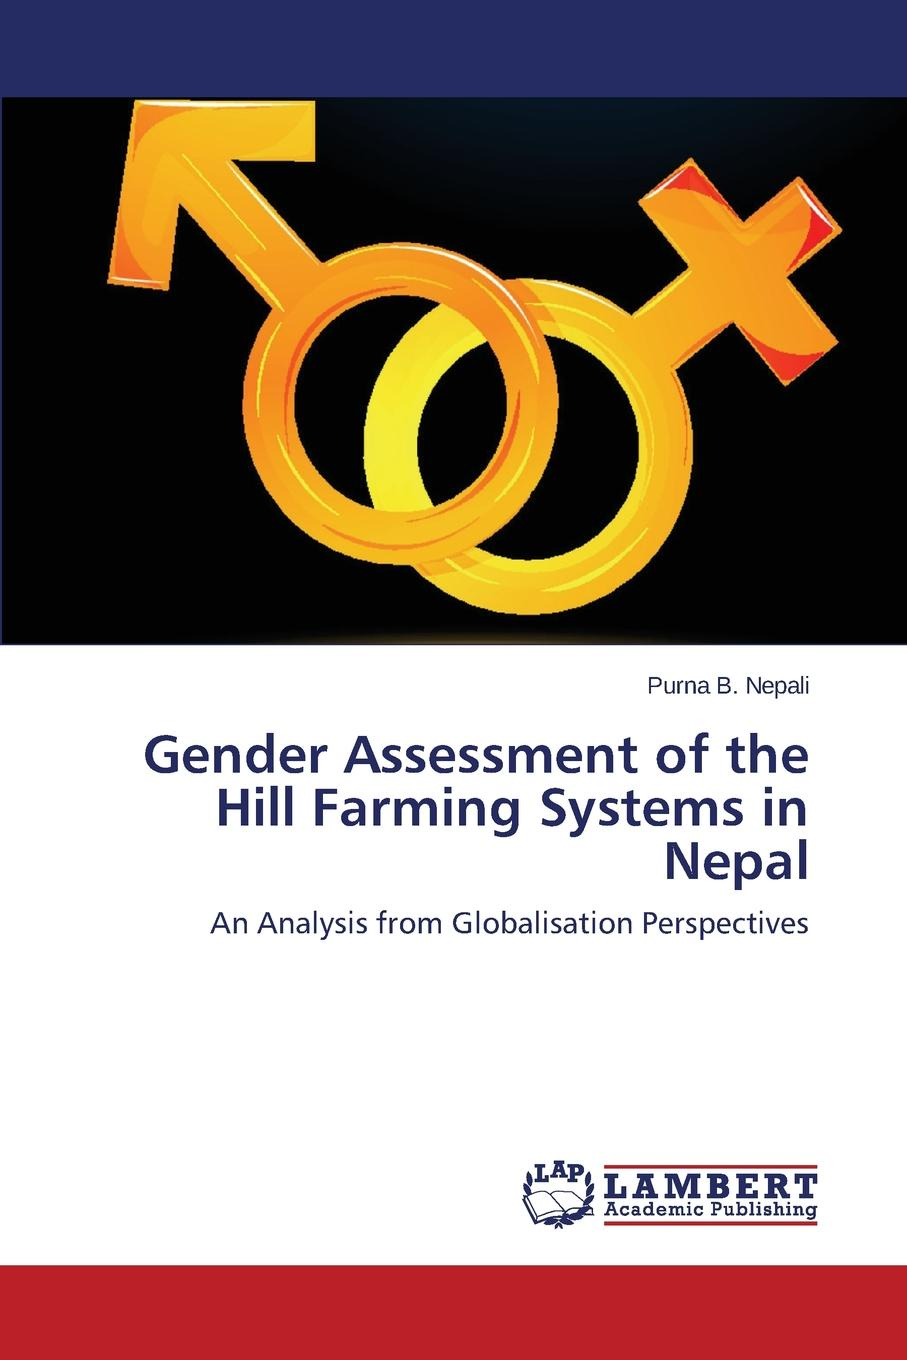 Nepali Purna B. Gender Assessment of the Hill Farming Systems in Nepal gender globalization and postsocialism